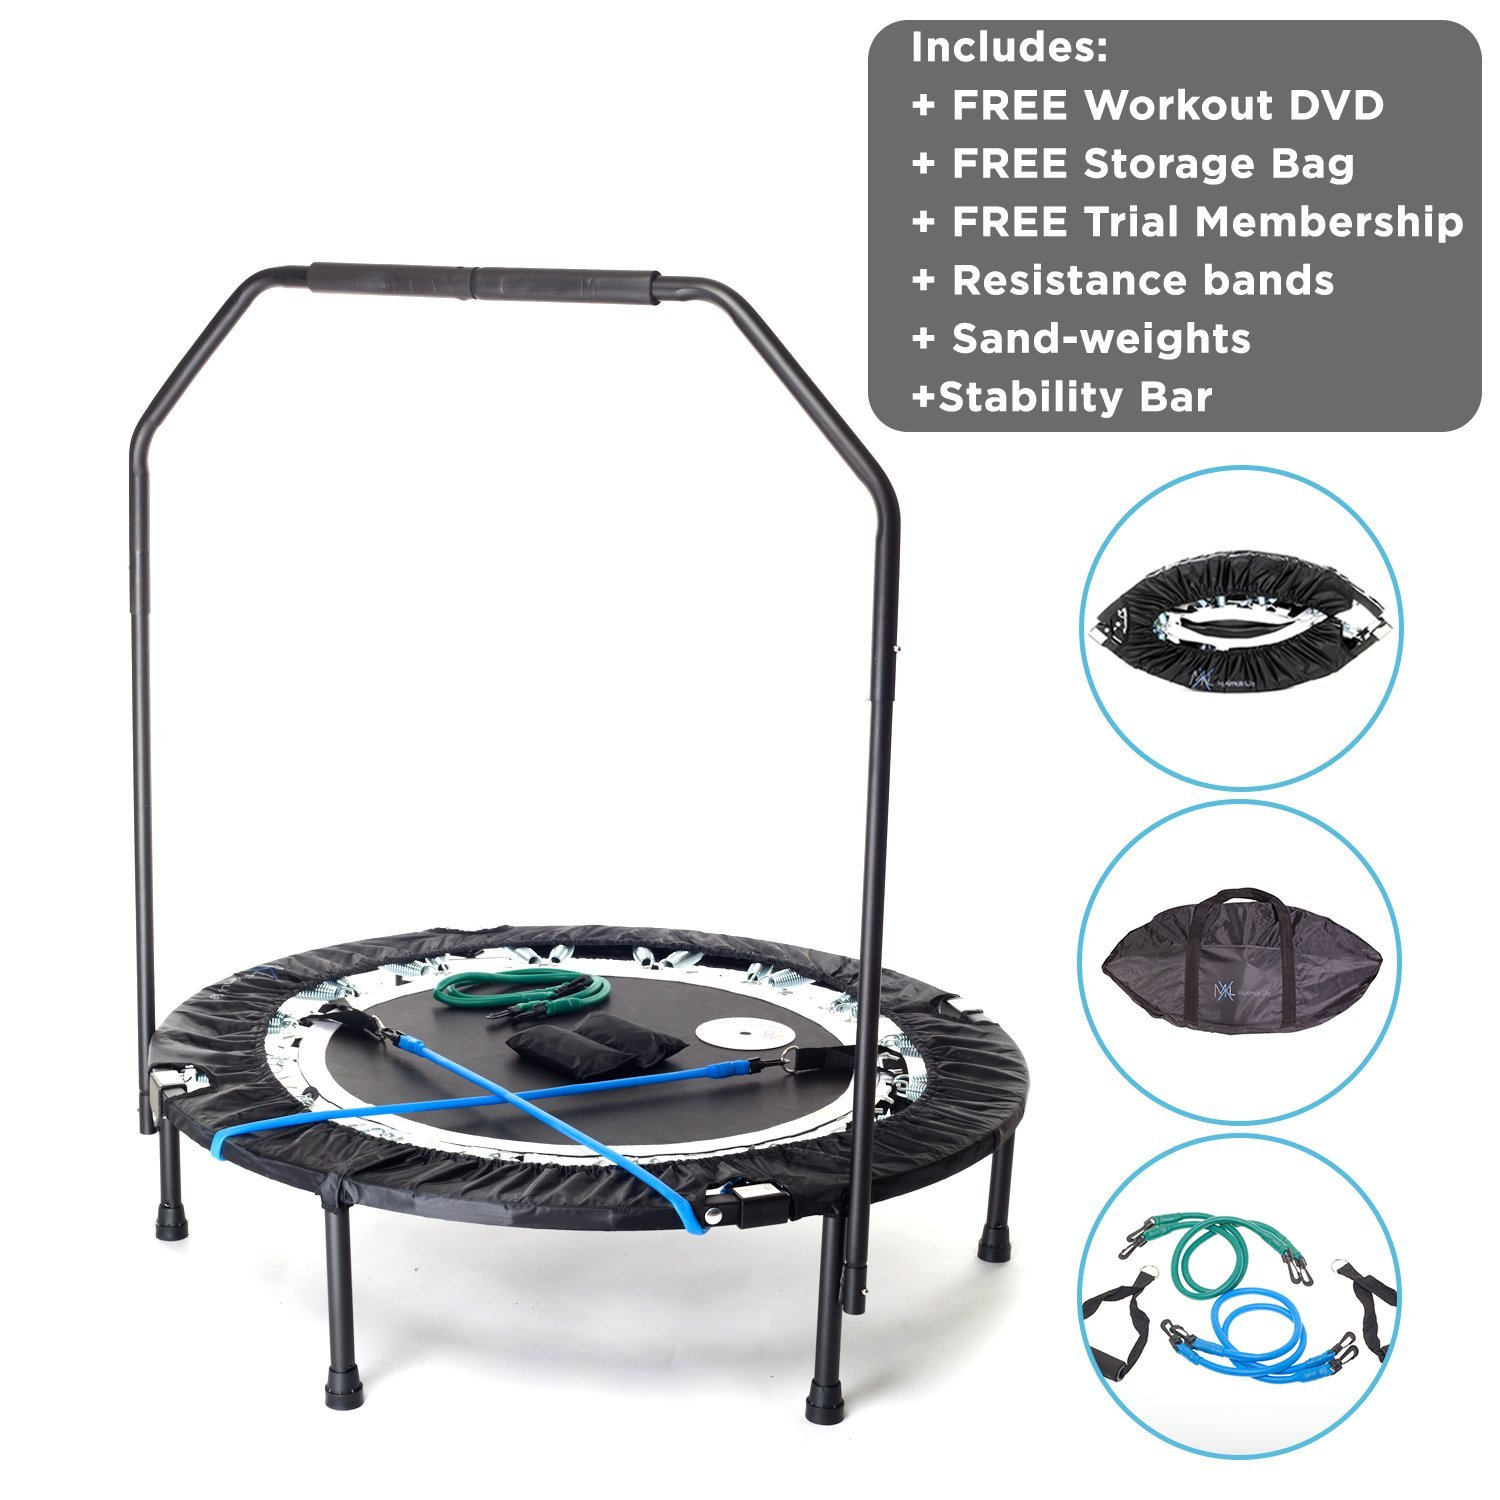 MaXimus Pro Mini Trampoline – For the Best Trampoline for Workout